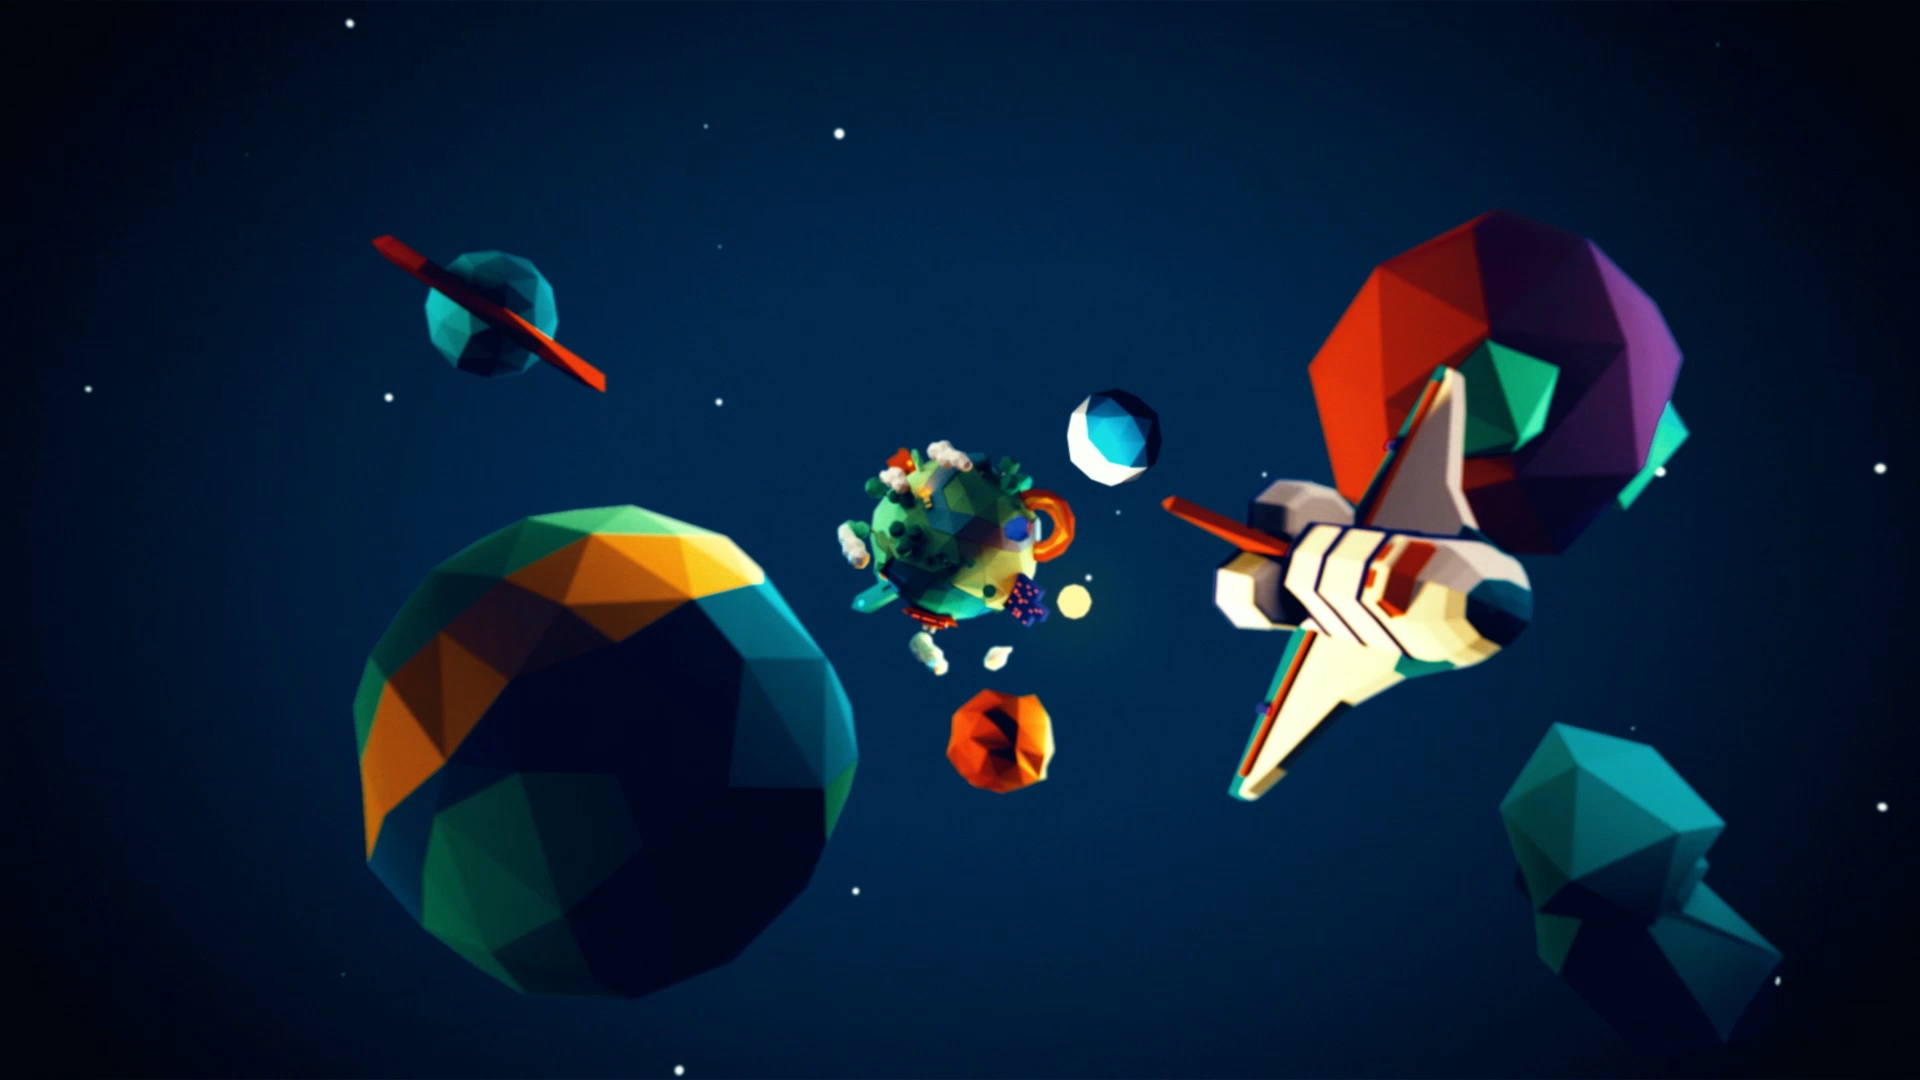 EXXON-MOBIL--THE-DOT---Young-Illustration-&-Animation-Studio-Manchester-2D,3D,-STOP-MOTION,-PAPER-CRAFT,-CLAYMATION, low poly,SPACE,-ANIMATION.jpg.jpg